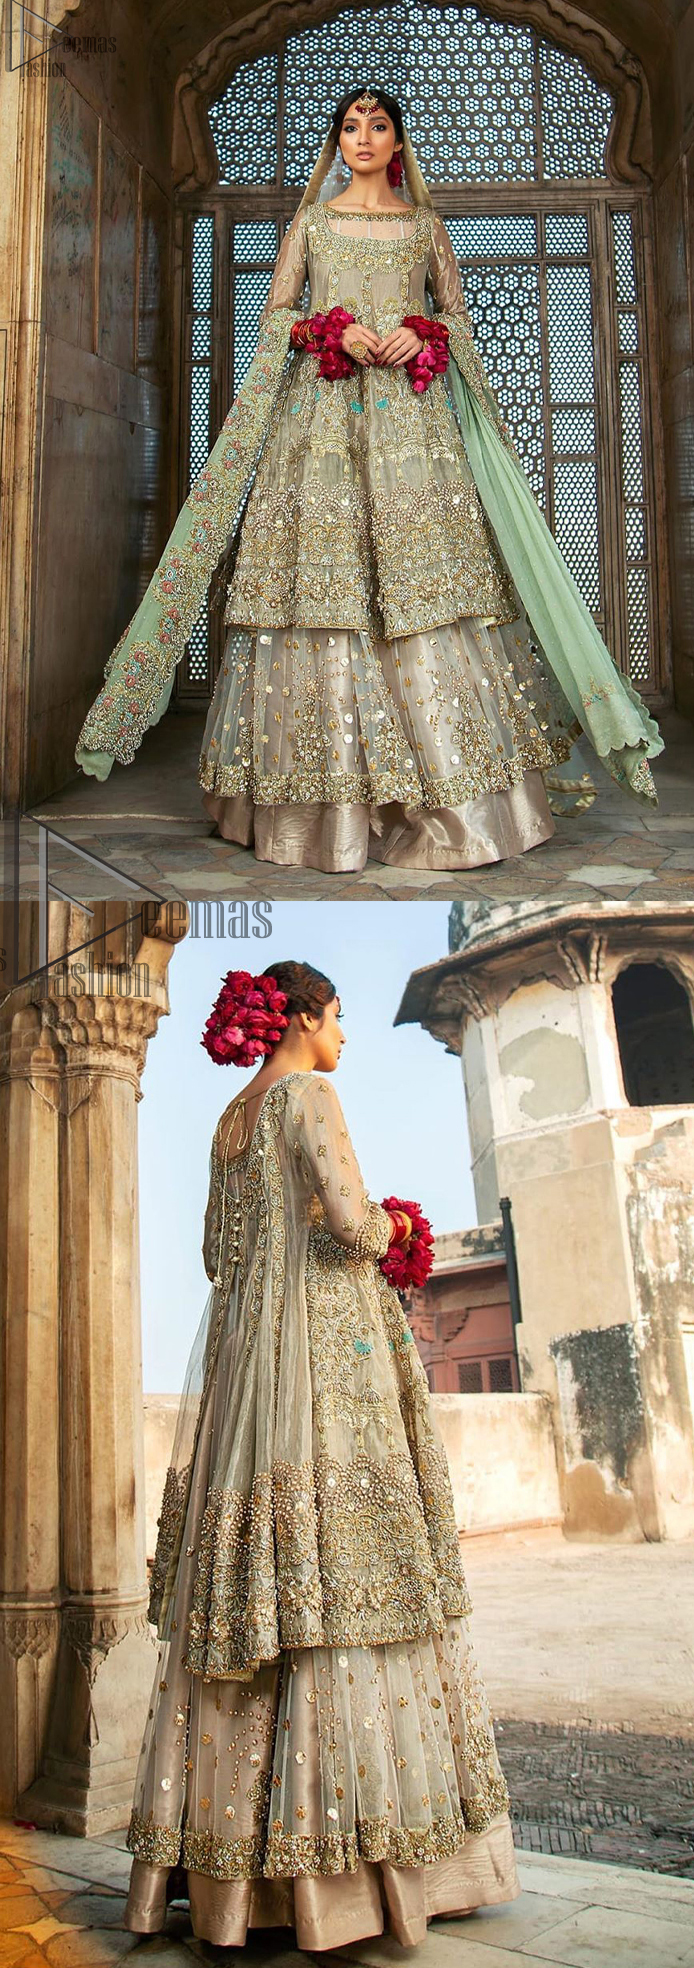 Pastel Green Double Layer Frock - Tea Rose Sharara. Fabulously stitched, Pastel Green double flared frock in maxi style is exquisite indeed. Fully embellished with tilla, dabka, sequins, pearls and silk thread embroidery. The frock body is entirely composed of pure organza with one part round neckline. Frock comes with three-quarter sleeves and it is concealed with a side zip closure. Tea rose pure tissue sharara with decently composed with fixed waist belt with side zip closure is one to wear on nikah or on a wedding day.